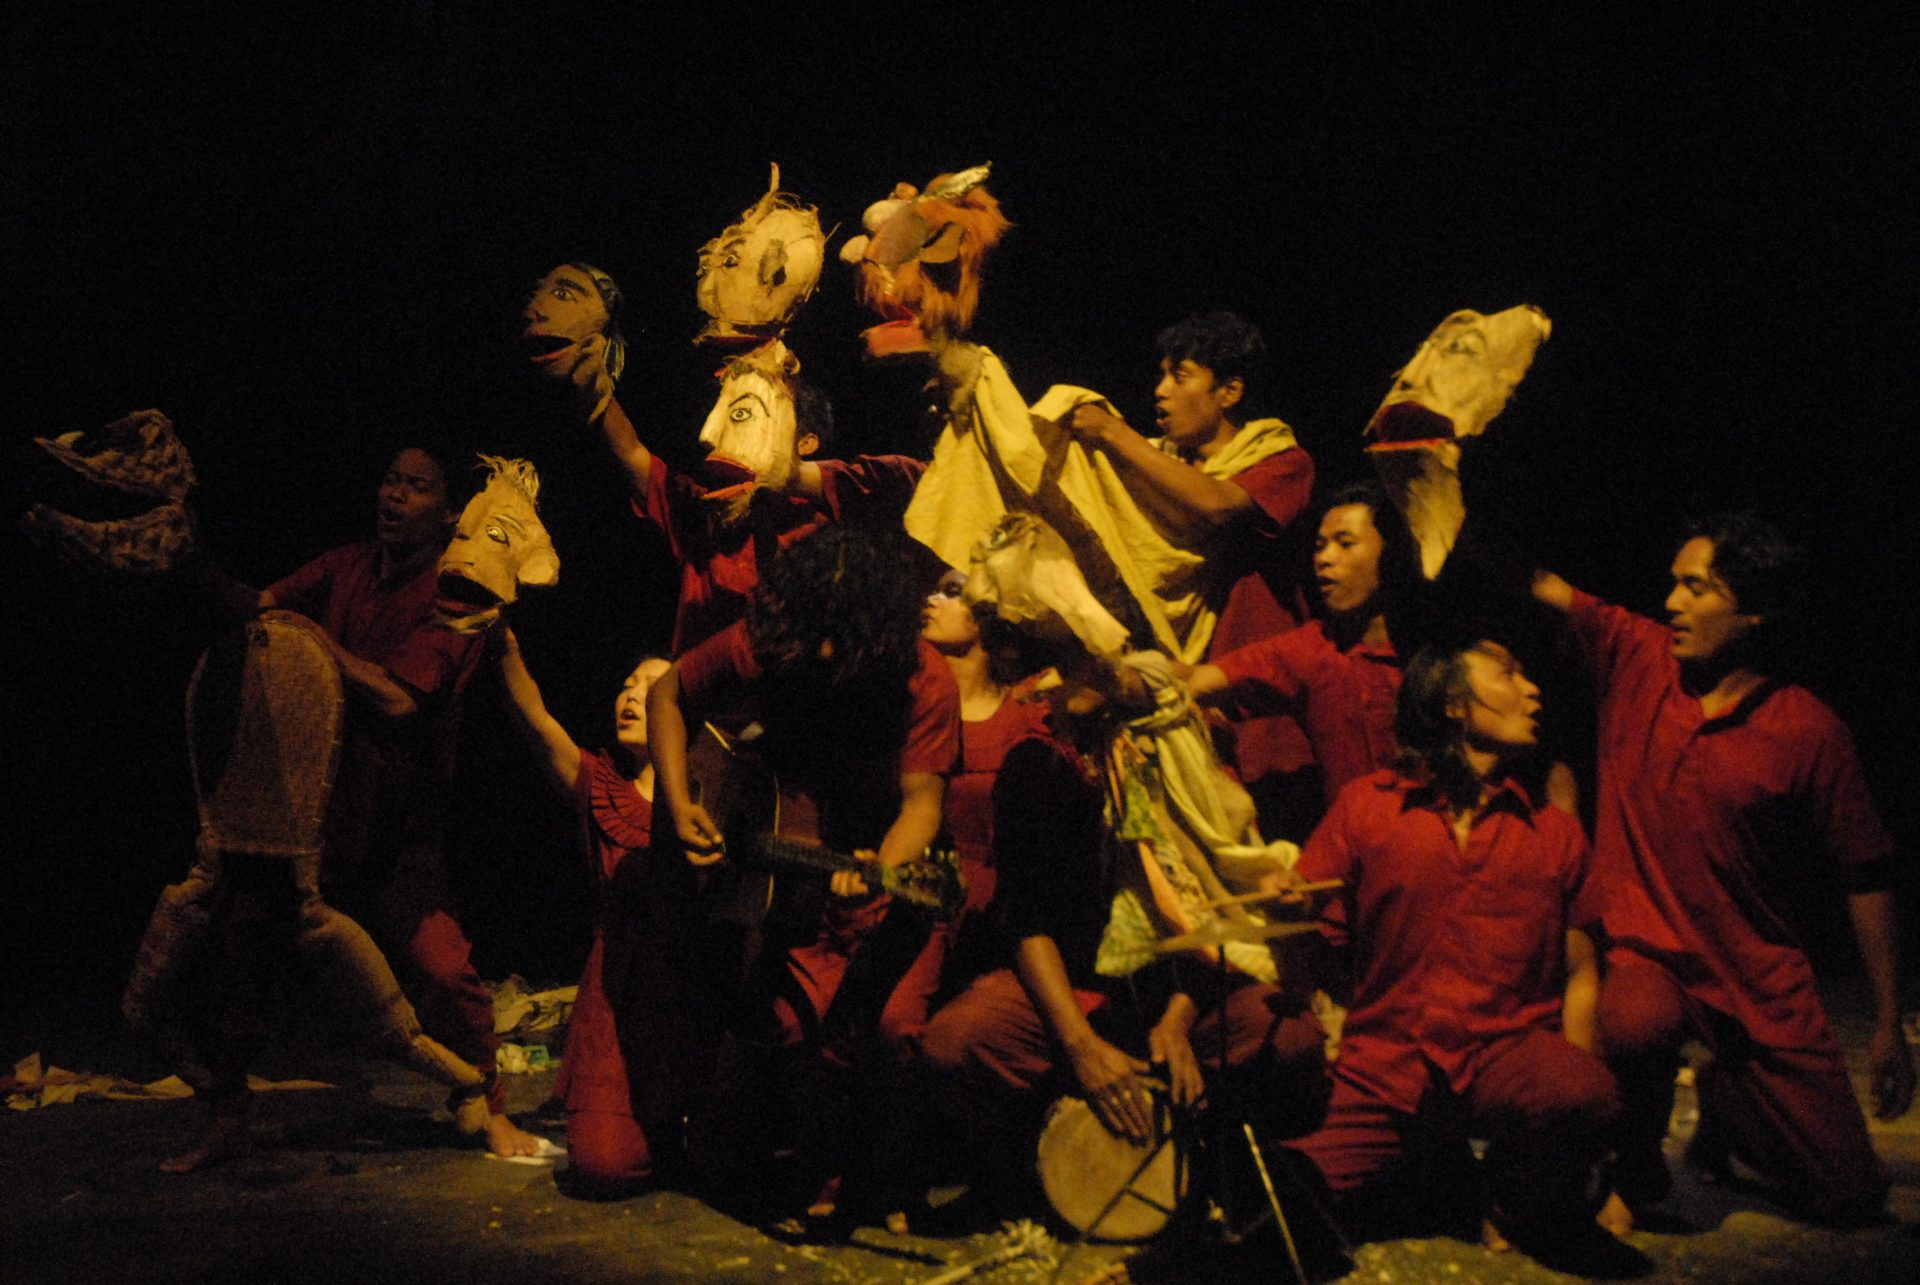 2008_india_power_puppetry_18